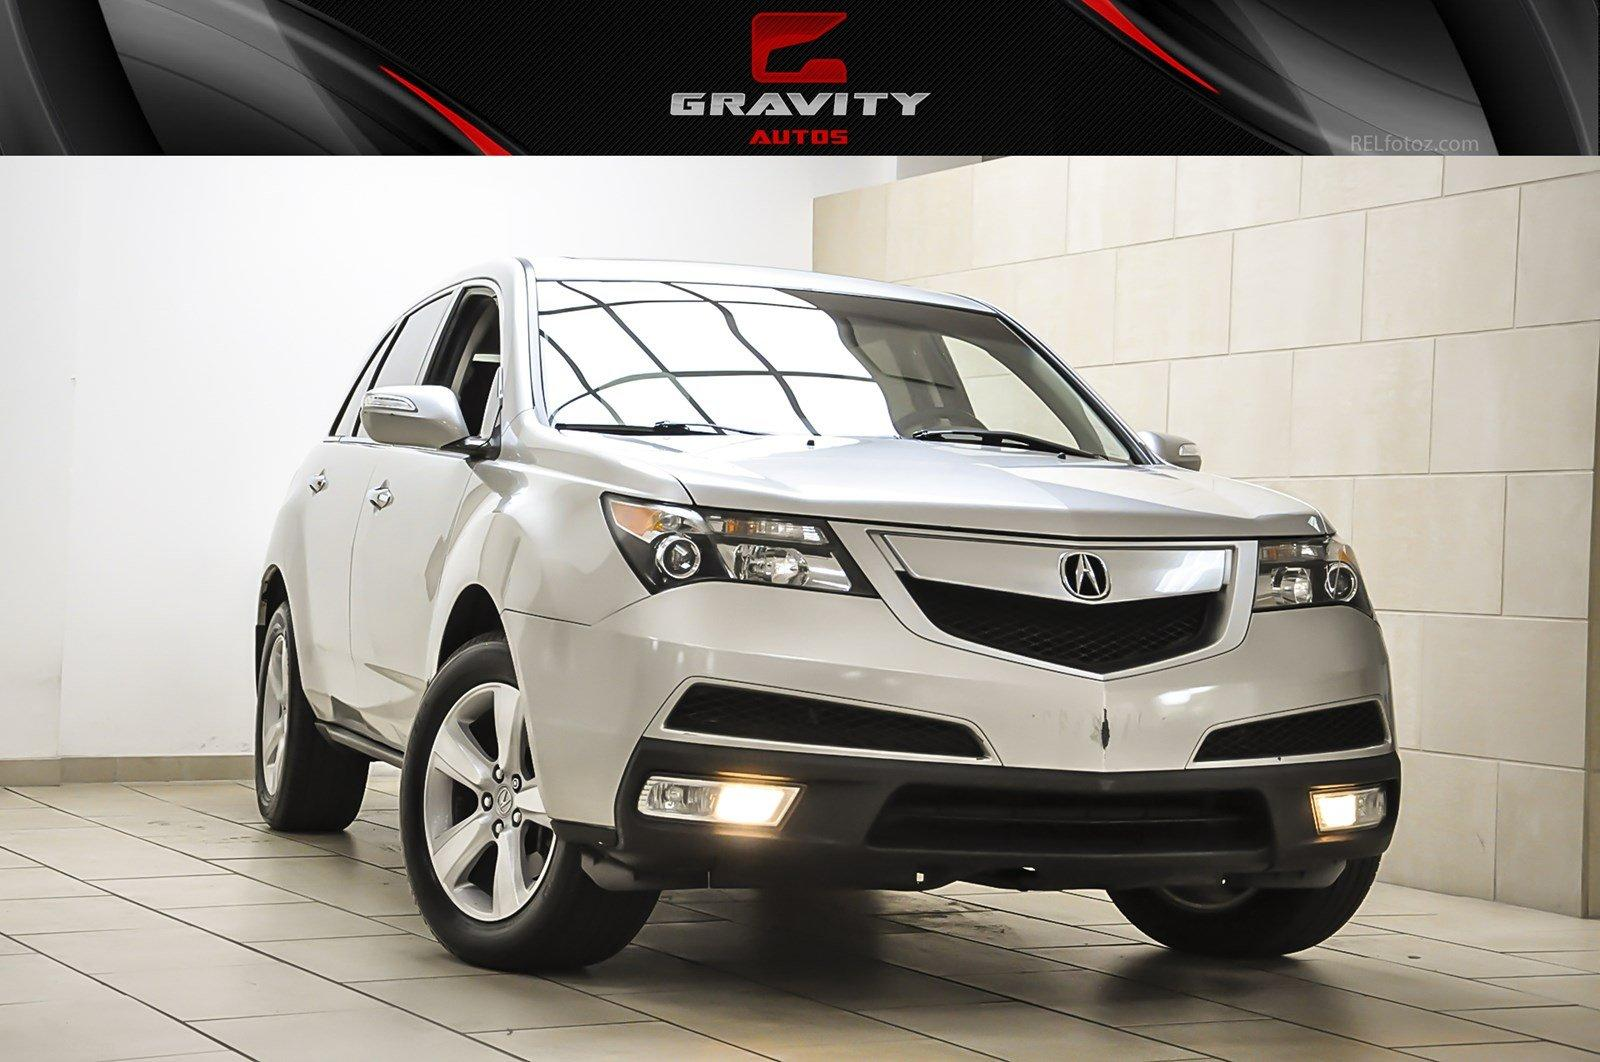 2013 acura mdx tech pkg stock 511448 for sale near sandy springs ga ga acura dealer. Black Bedroom Furniture Sets. Home Design Ideas